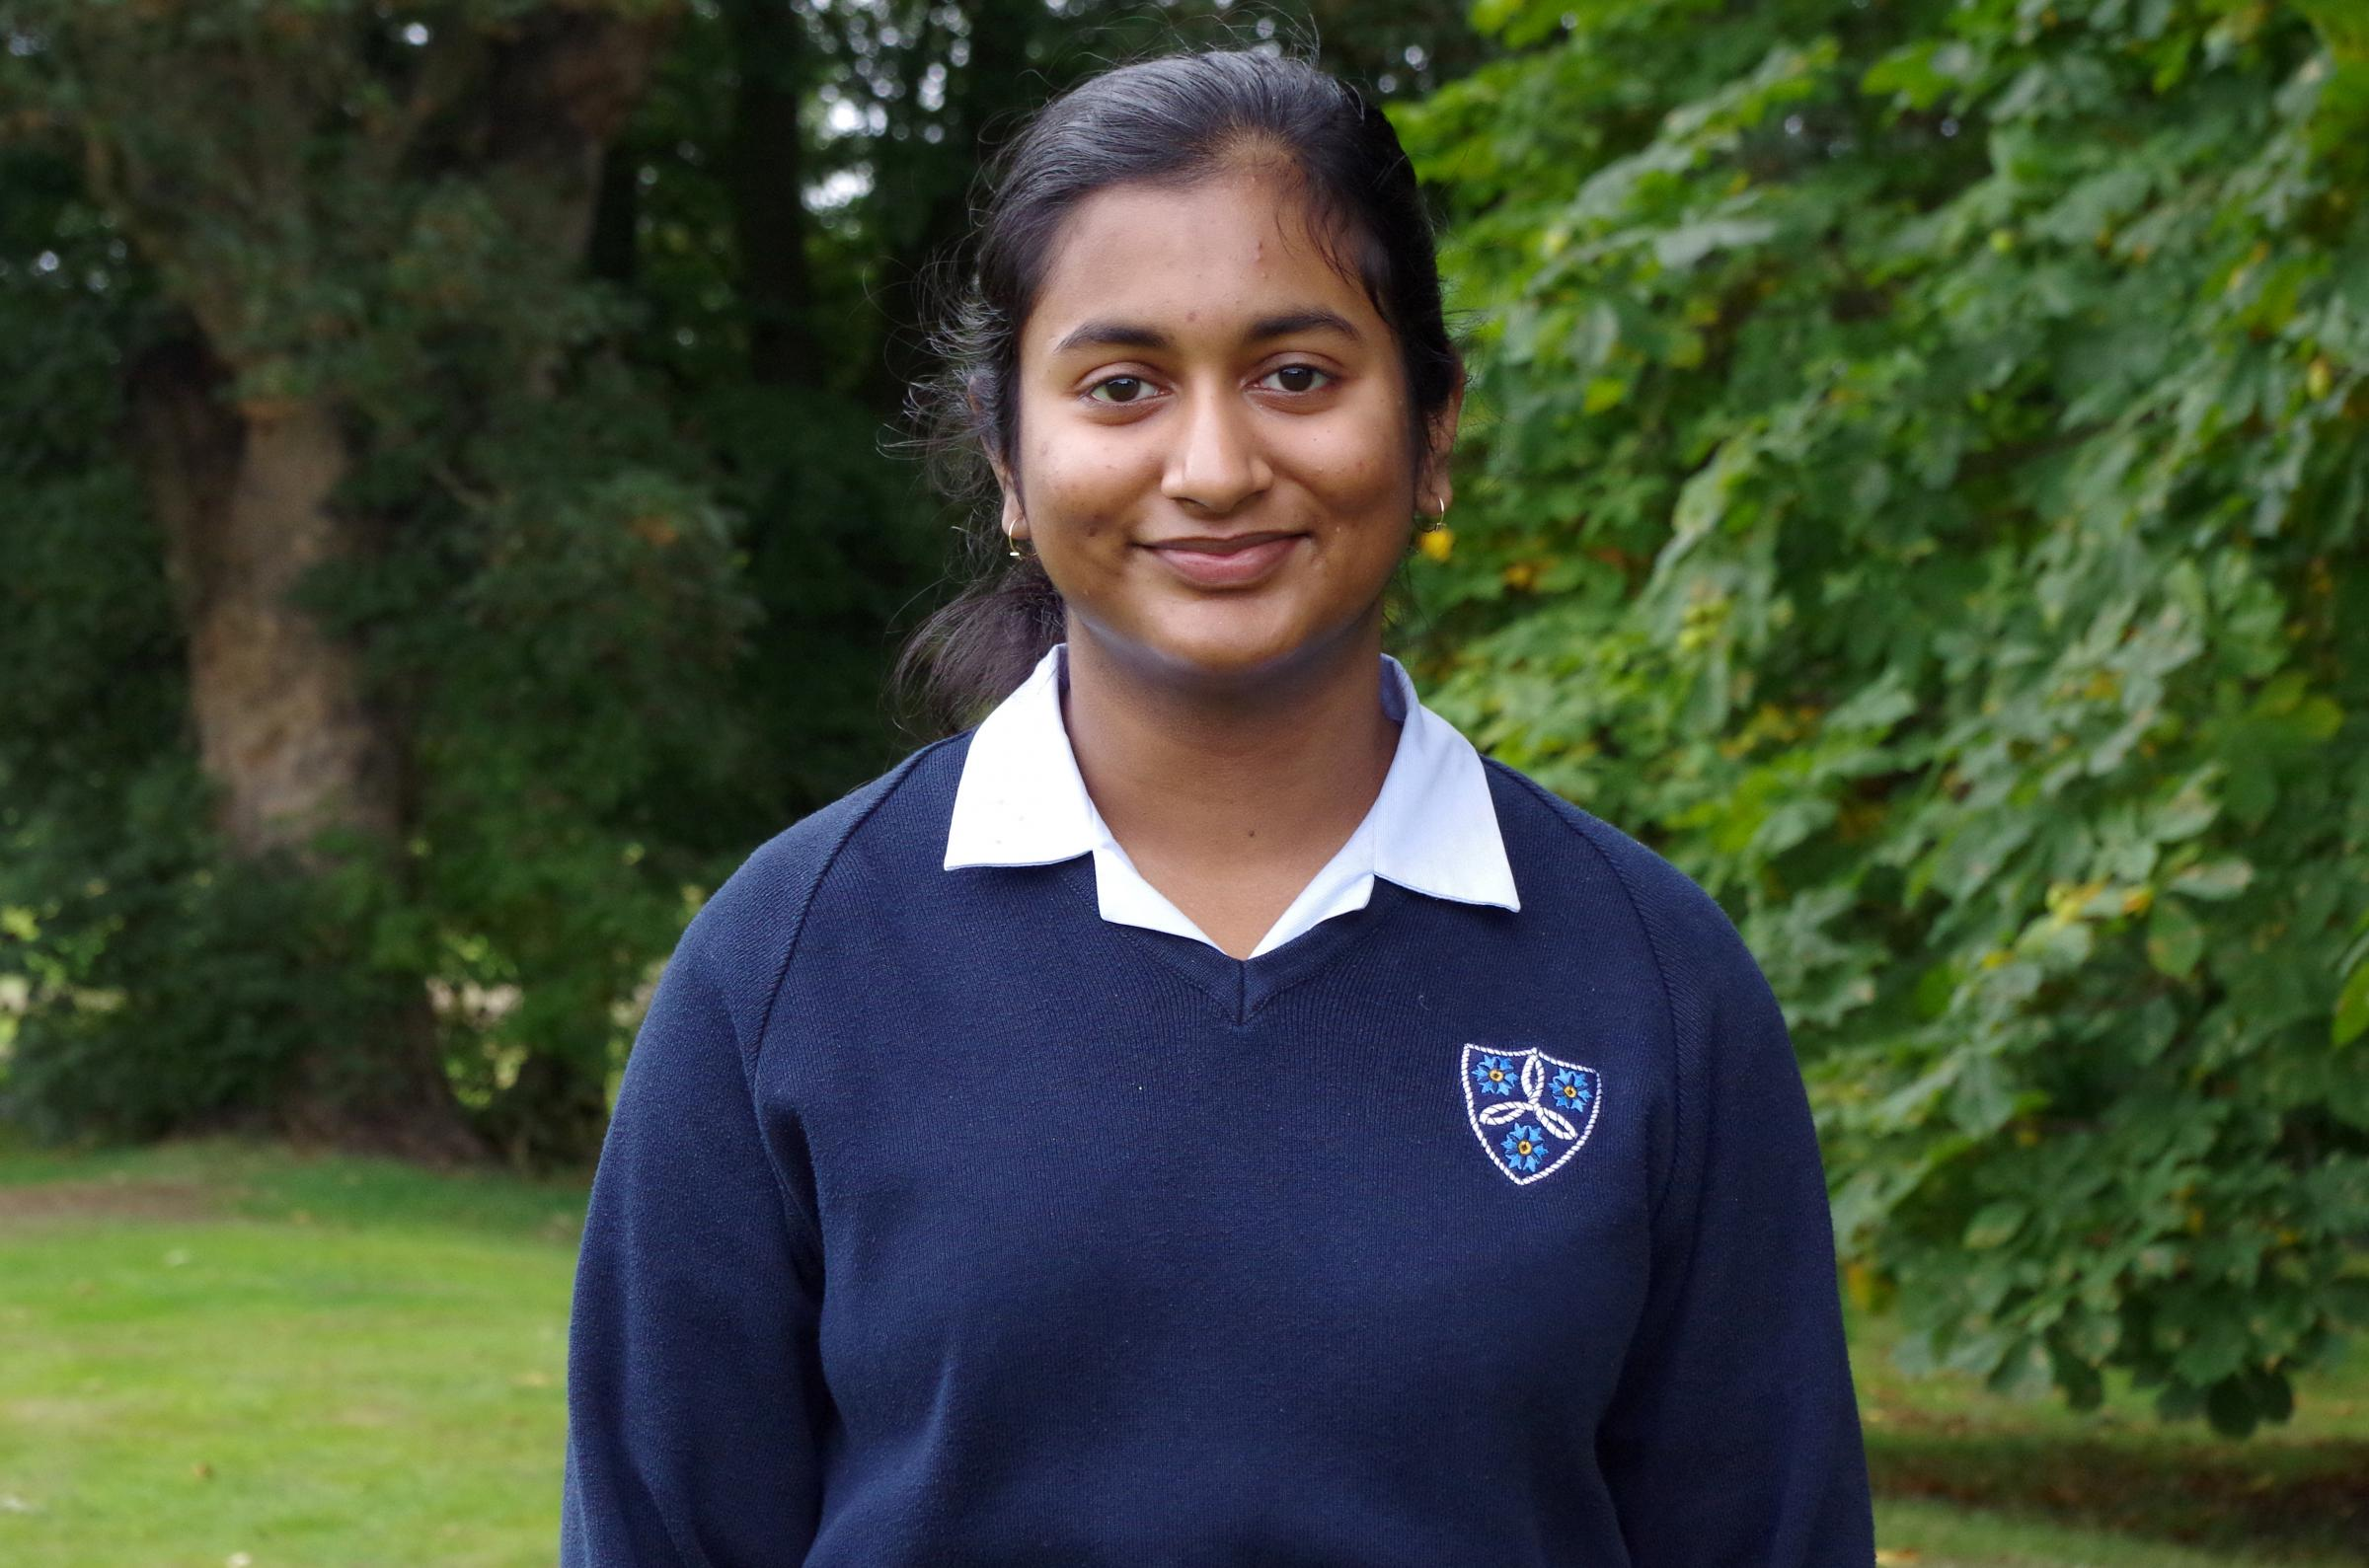 15-year-old Simran Sajan has been recognised as one of the Young Speakers of the year